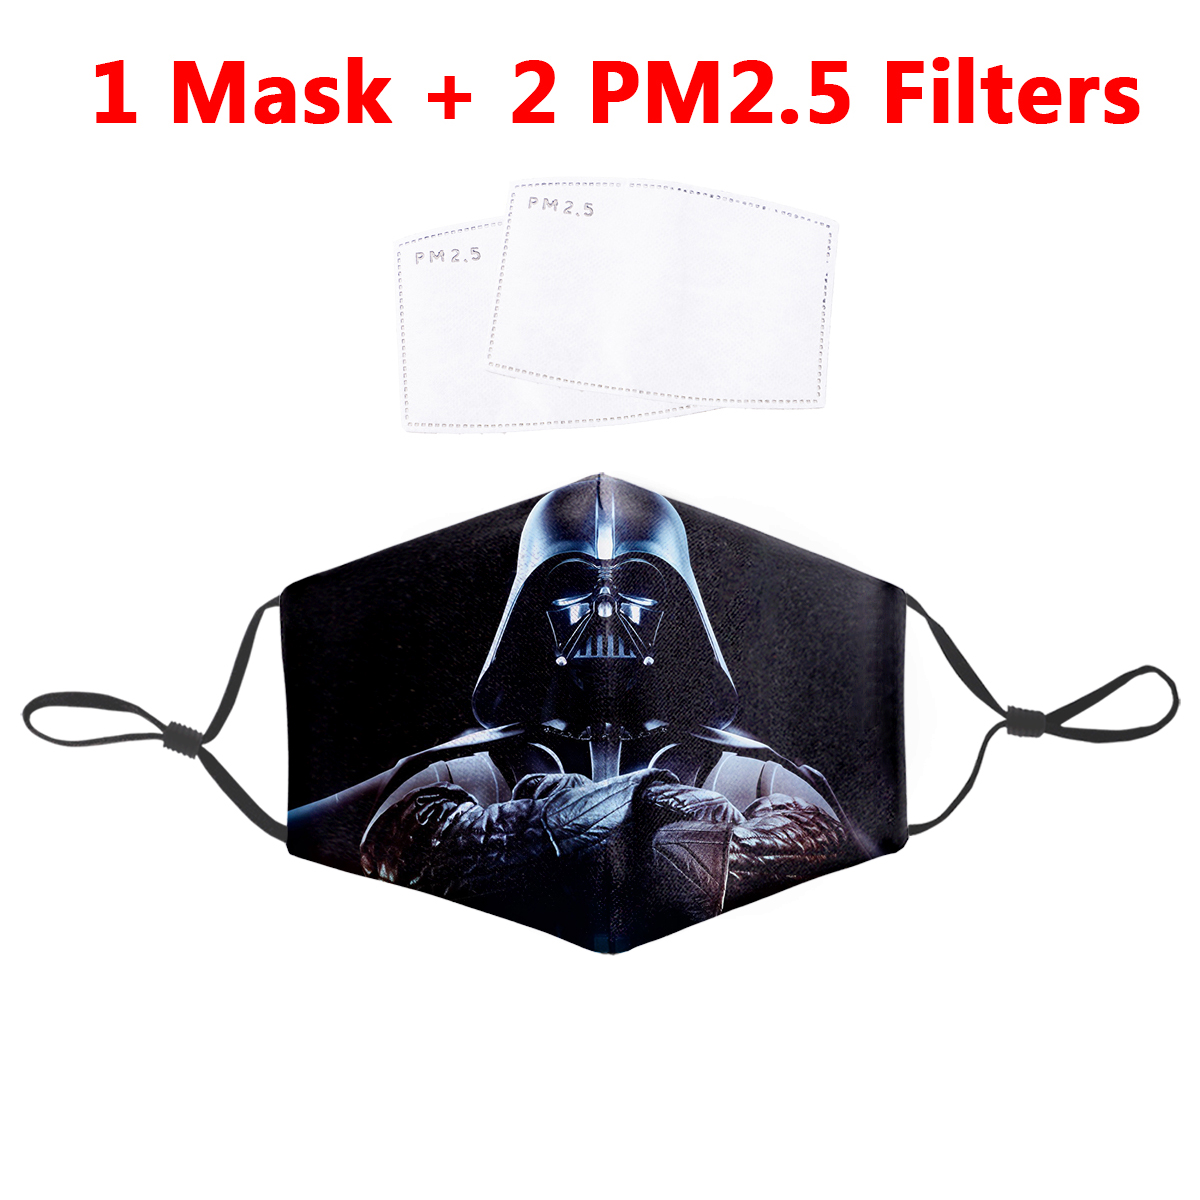 3D Darth Vader Black Pattern Mask Join The Empire Windproof Classic Movie PM2.5 Breathing Filter Fabric Polyester Mask As A Gift